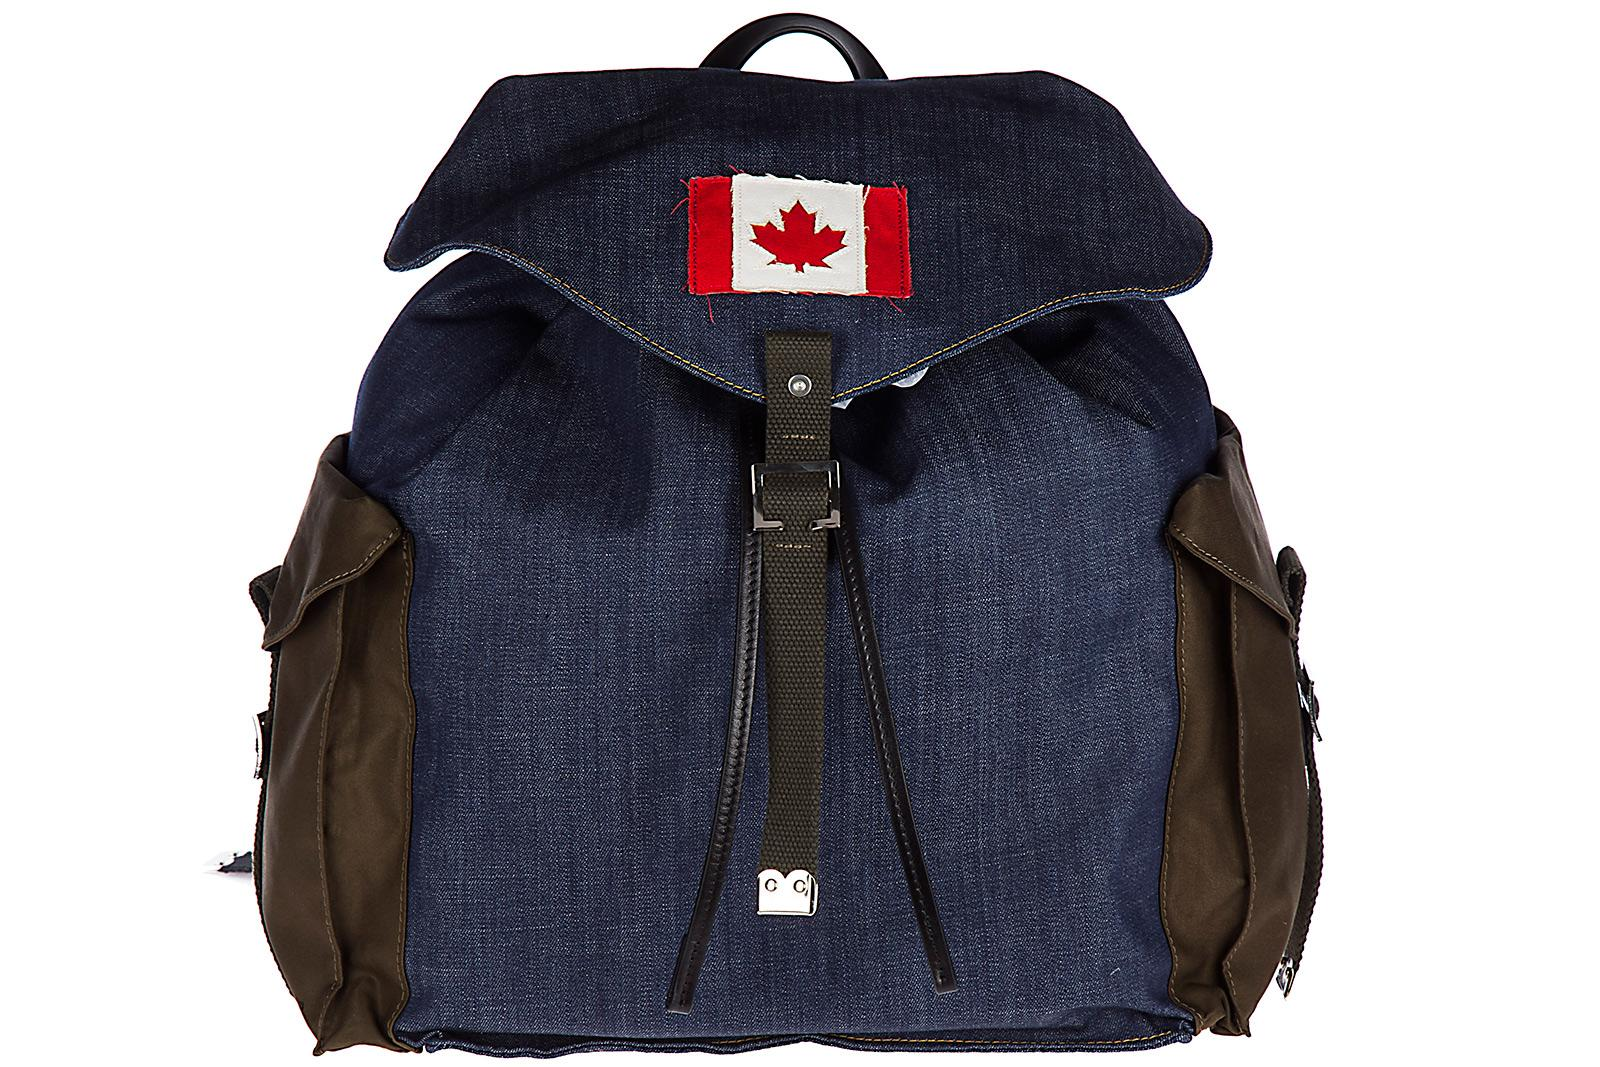 Dsquared2 Men's Rucksack Backpack Travel  Military Chic In Blue